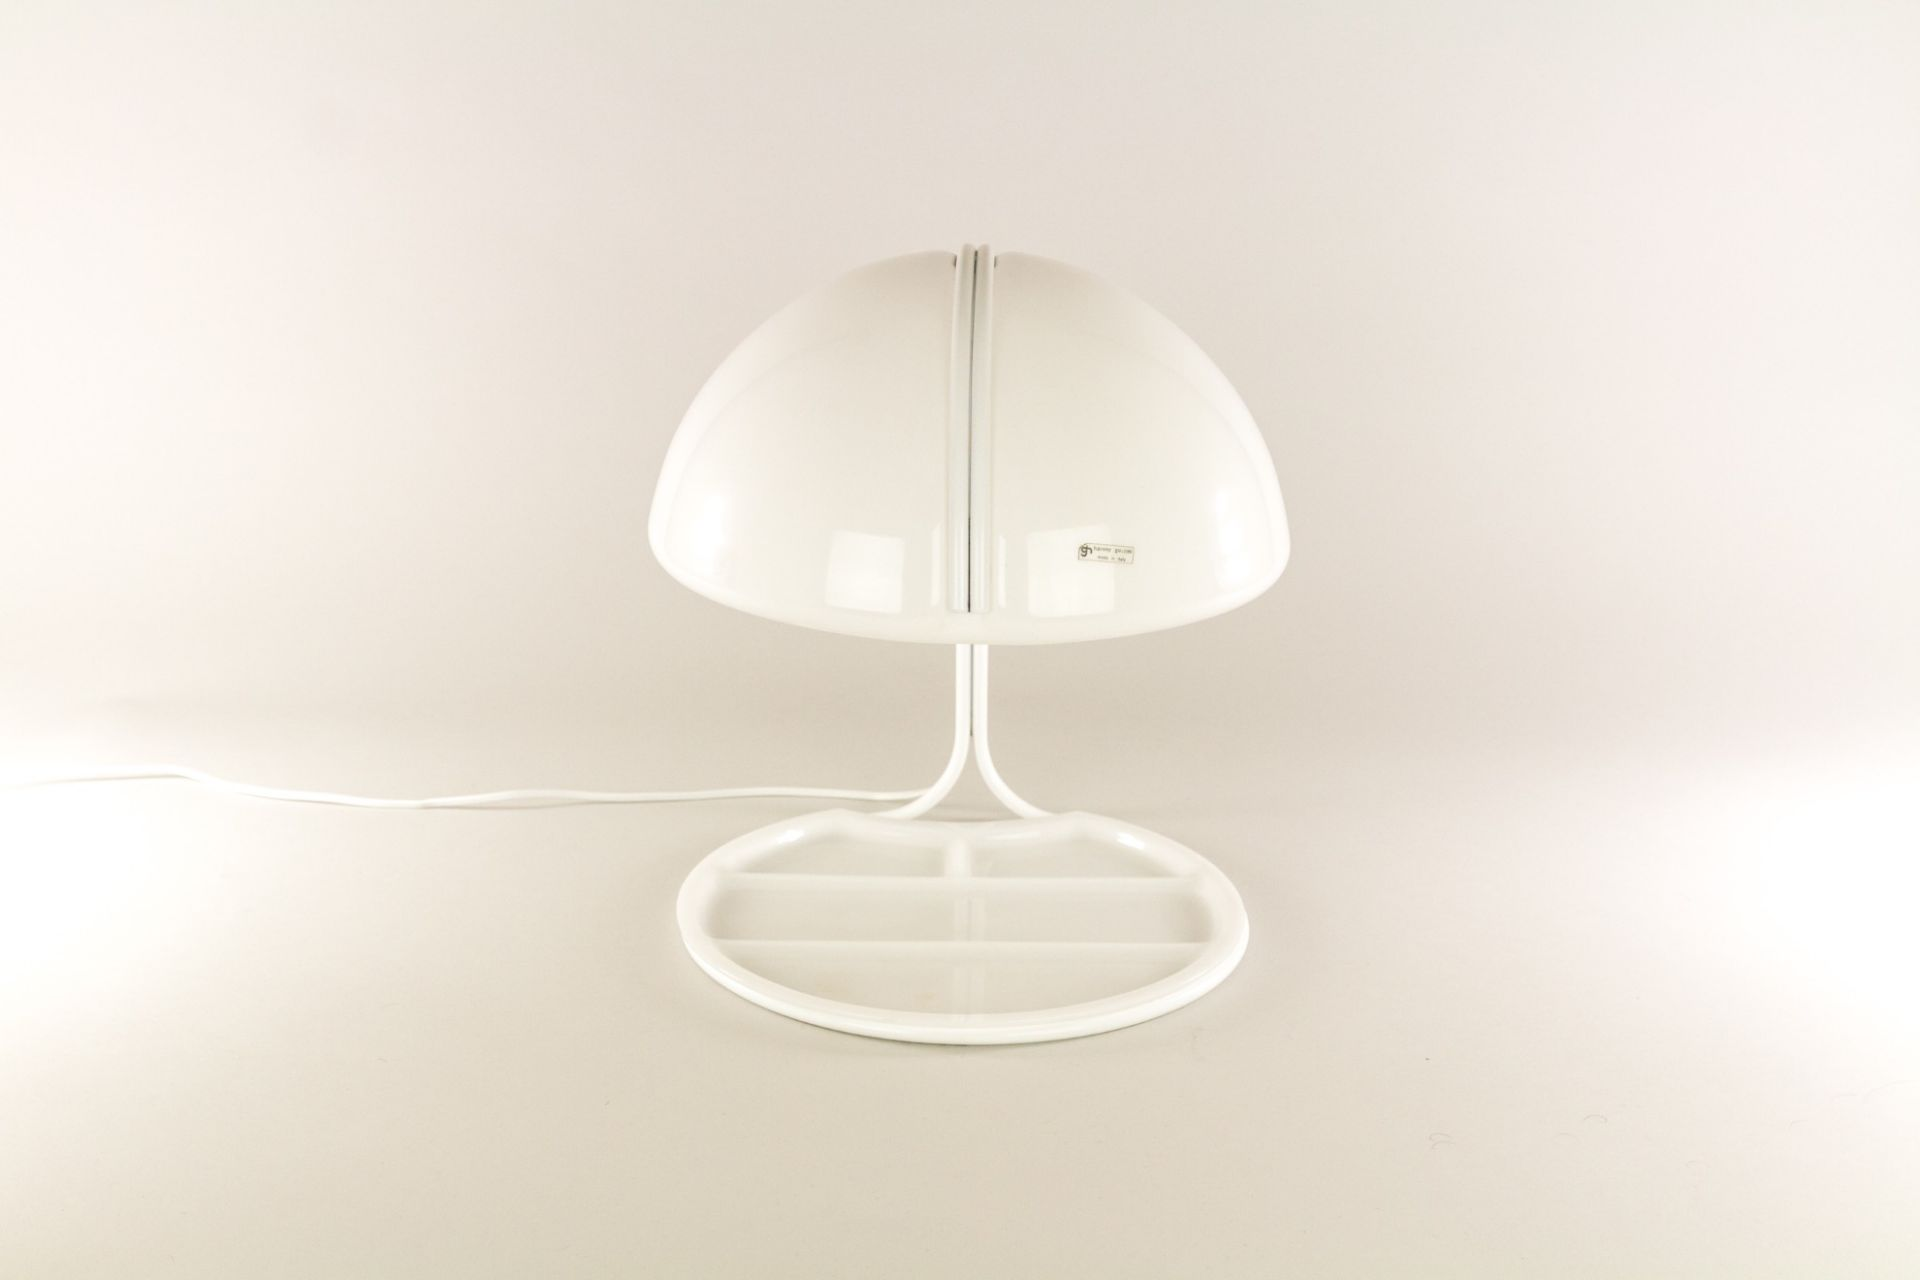 Conchiglia table lamp by Massoni and Buttura for Harvey Guzzini, 1960s